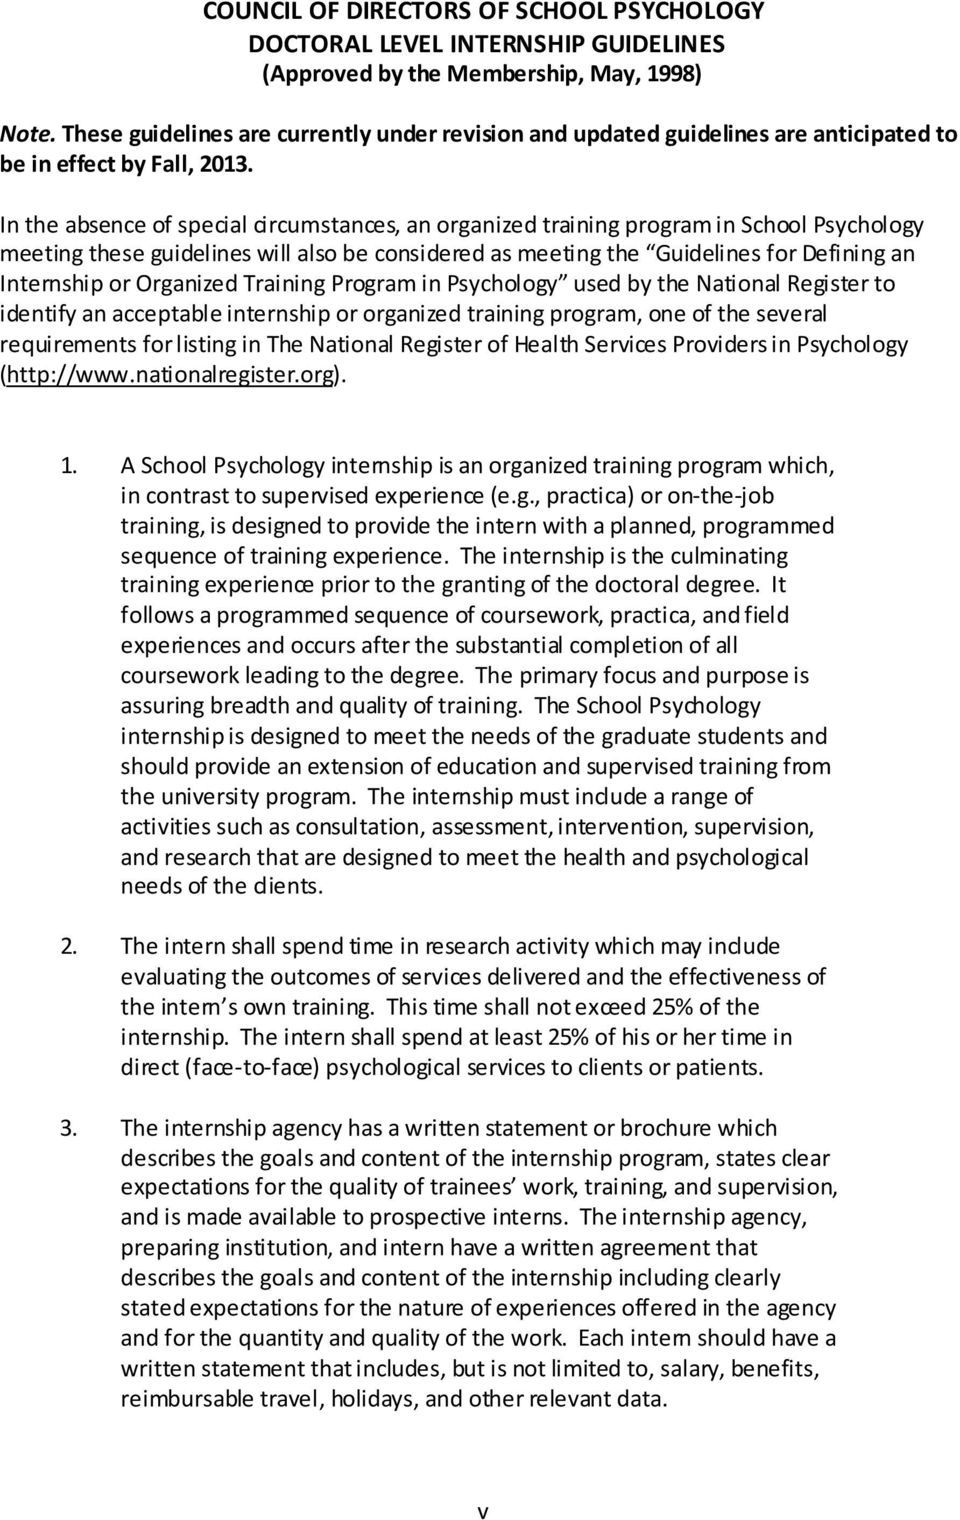 In the absence of special circumstances, an organized training program in School Psychology meeting these guidelines will also be considered as meeting the Guidelines for Defining an Internship or